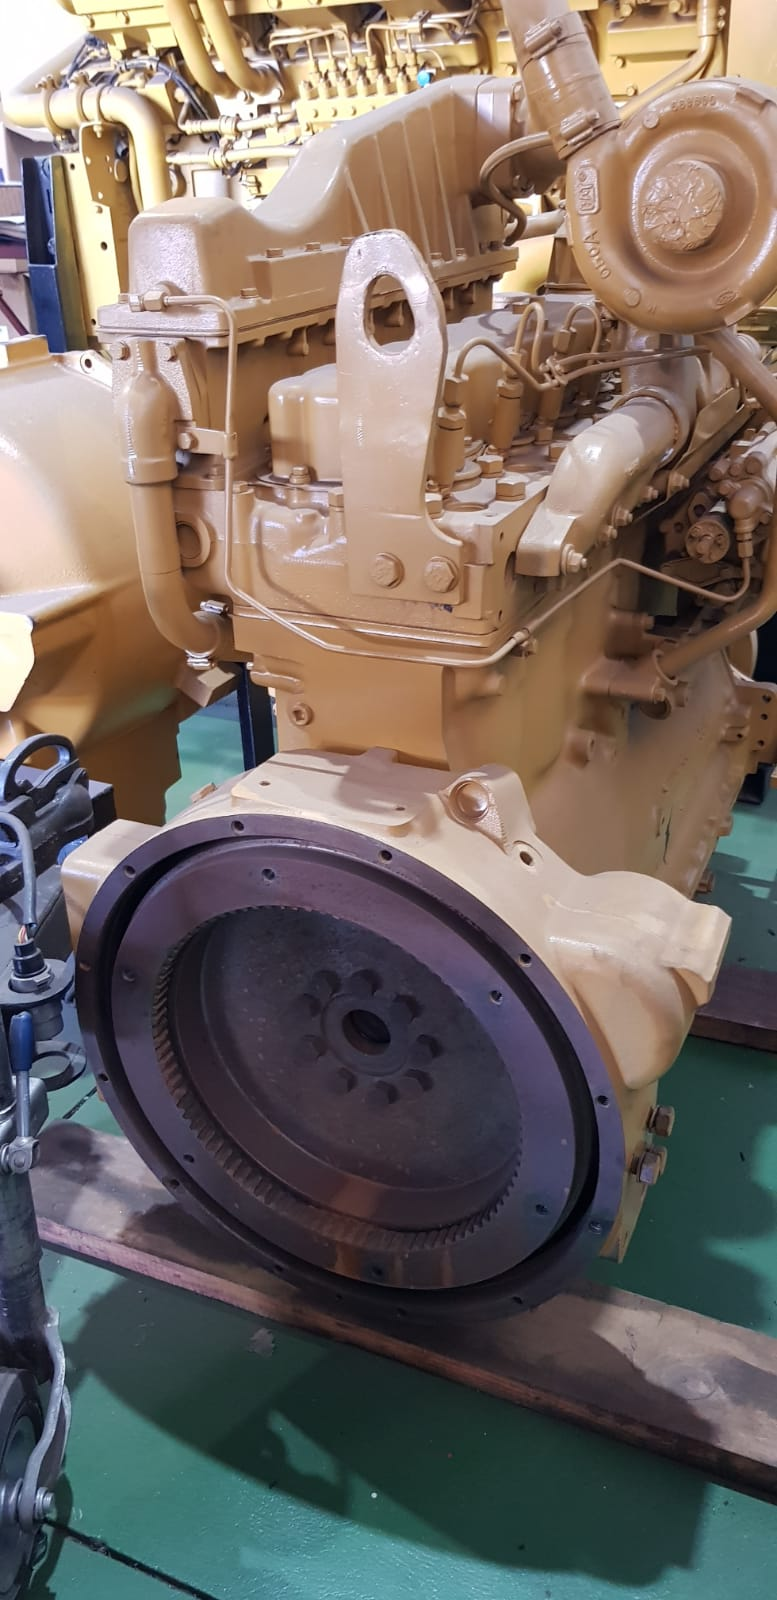 Caterpillar 3306 recon engine for sale!